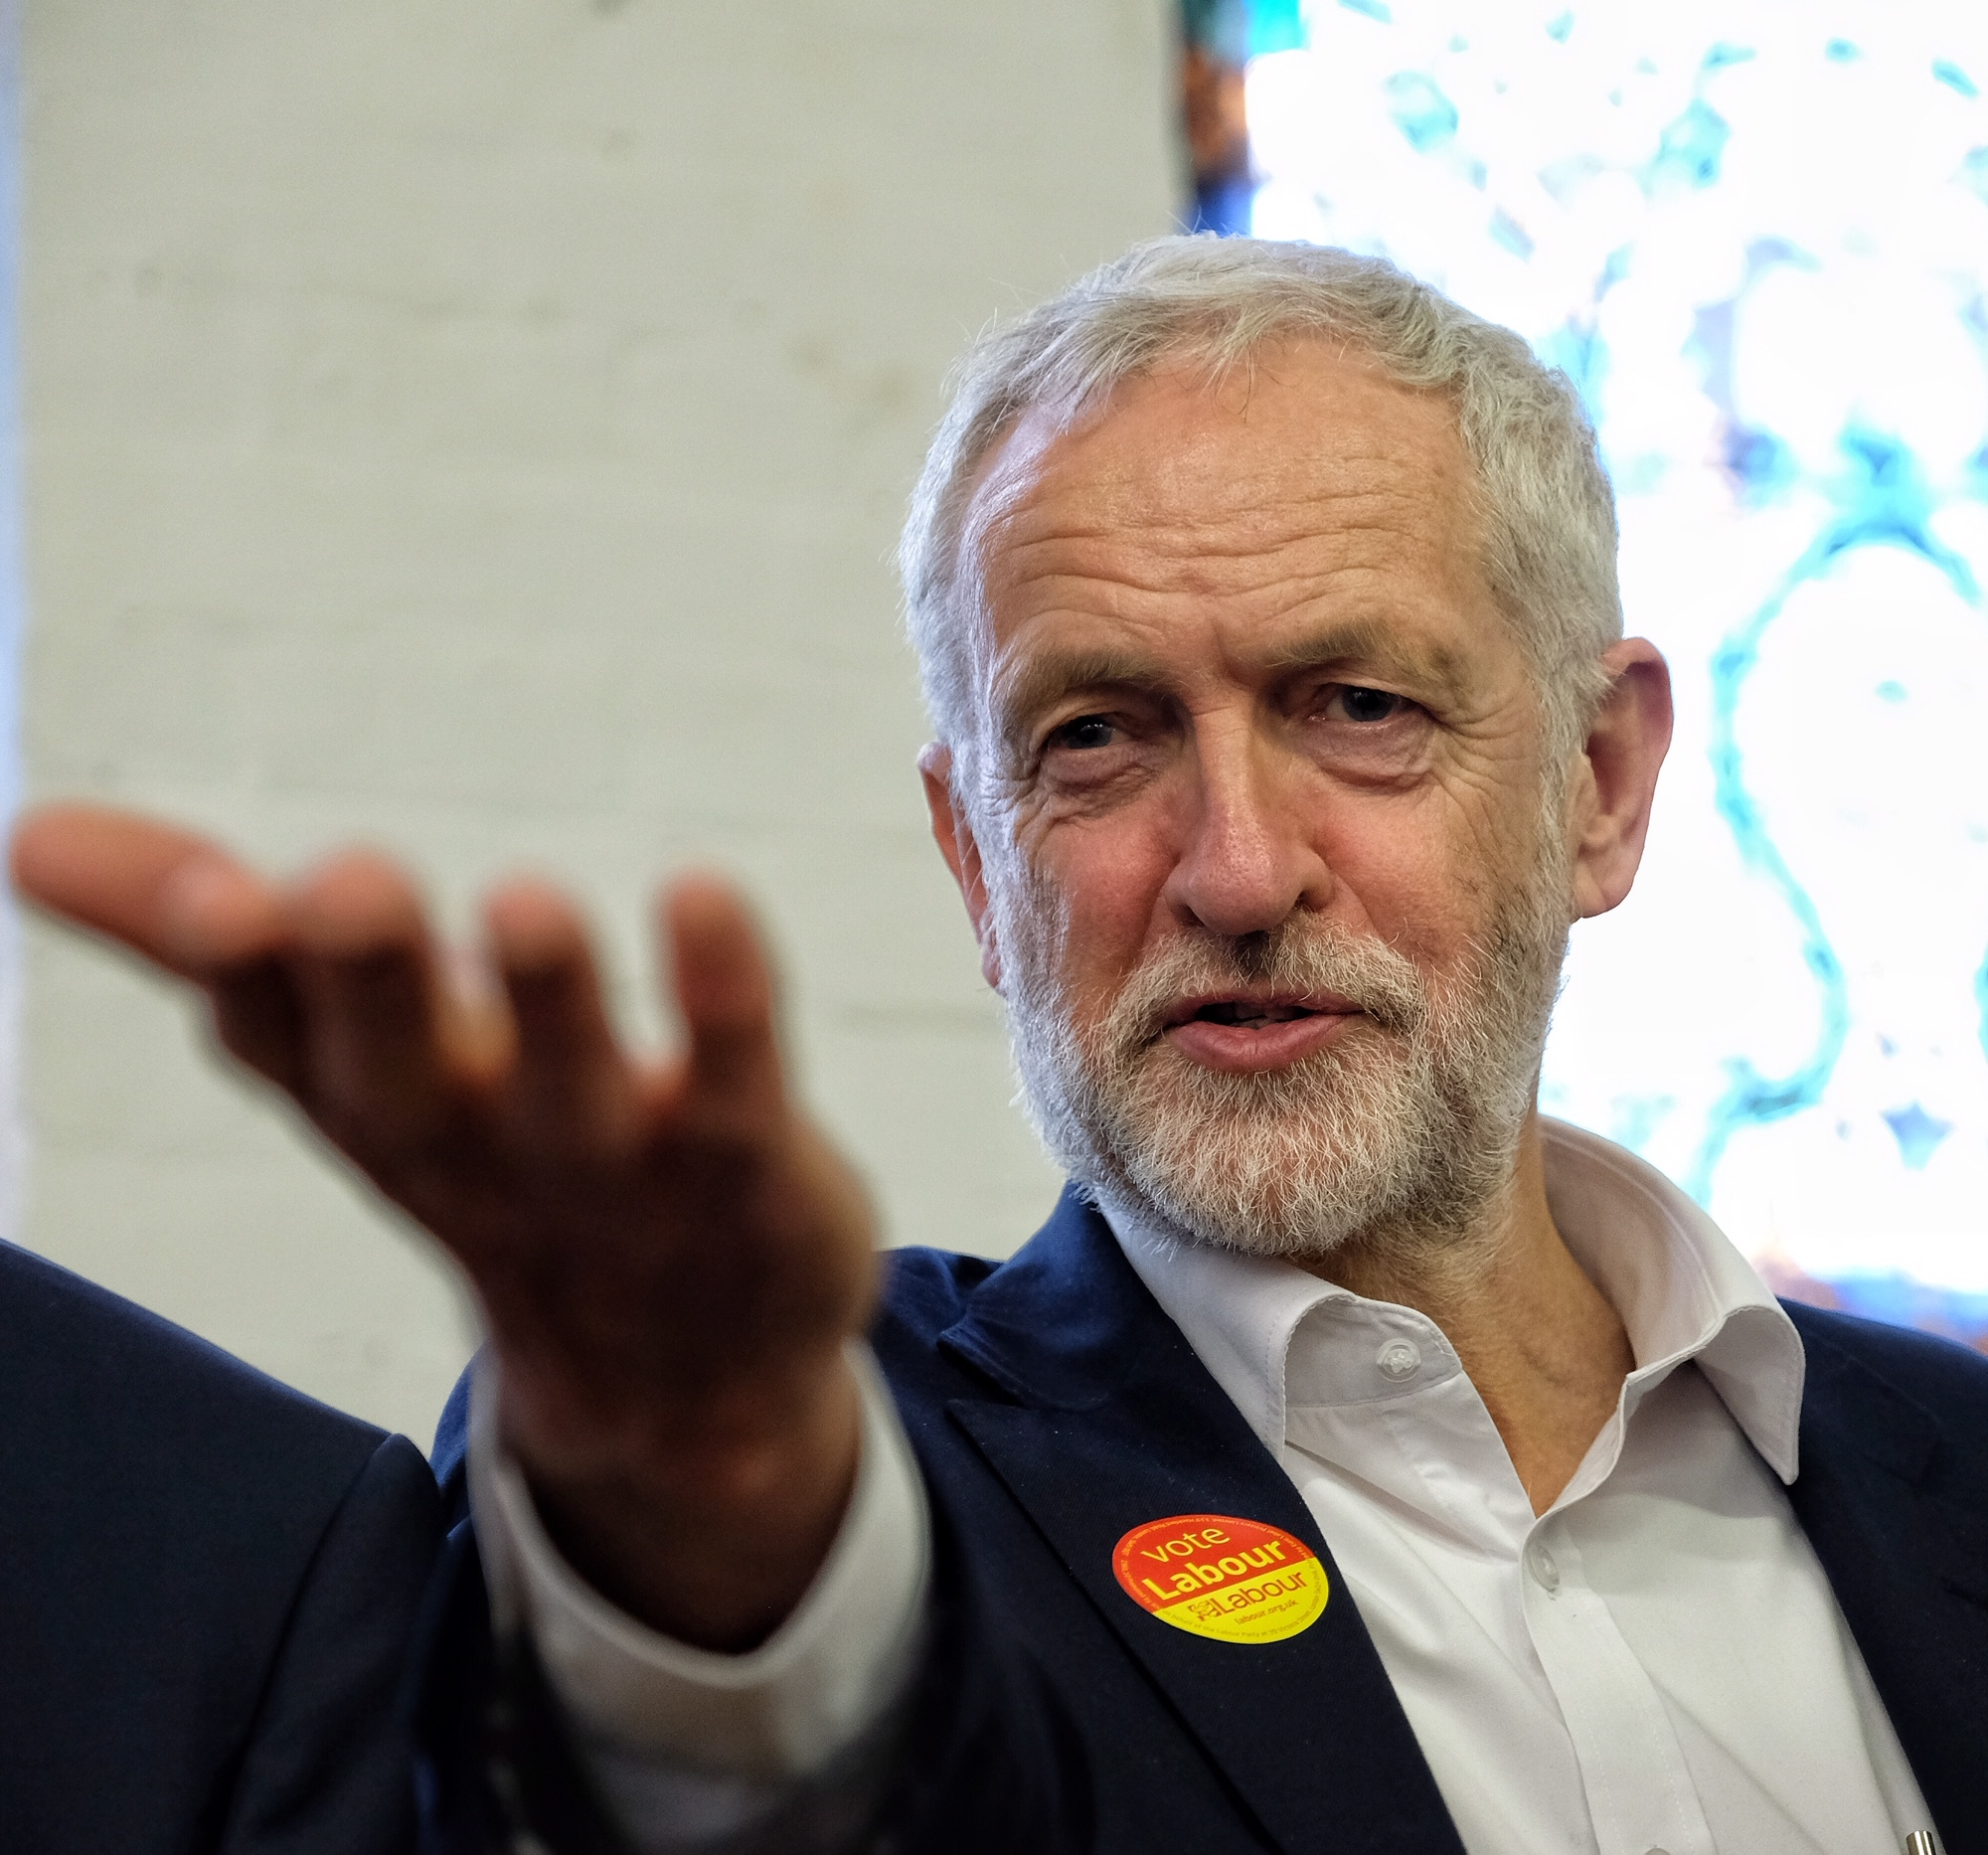 Labour leader Jeremy Corbyn comes to Reading